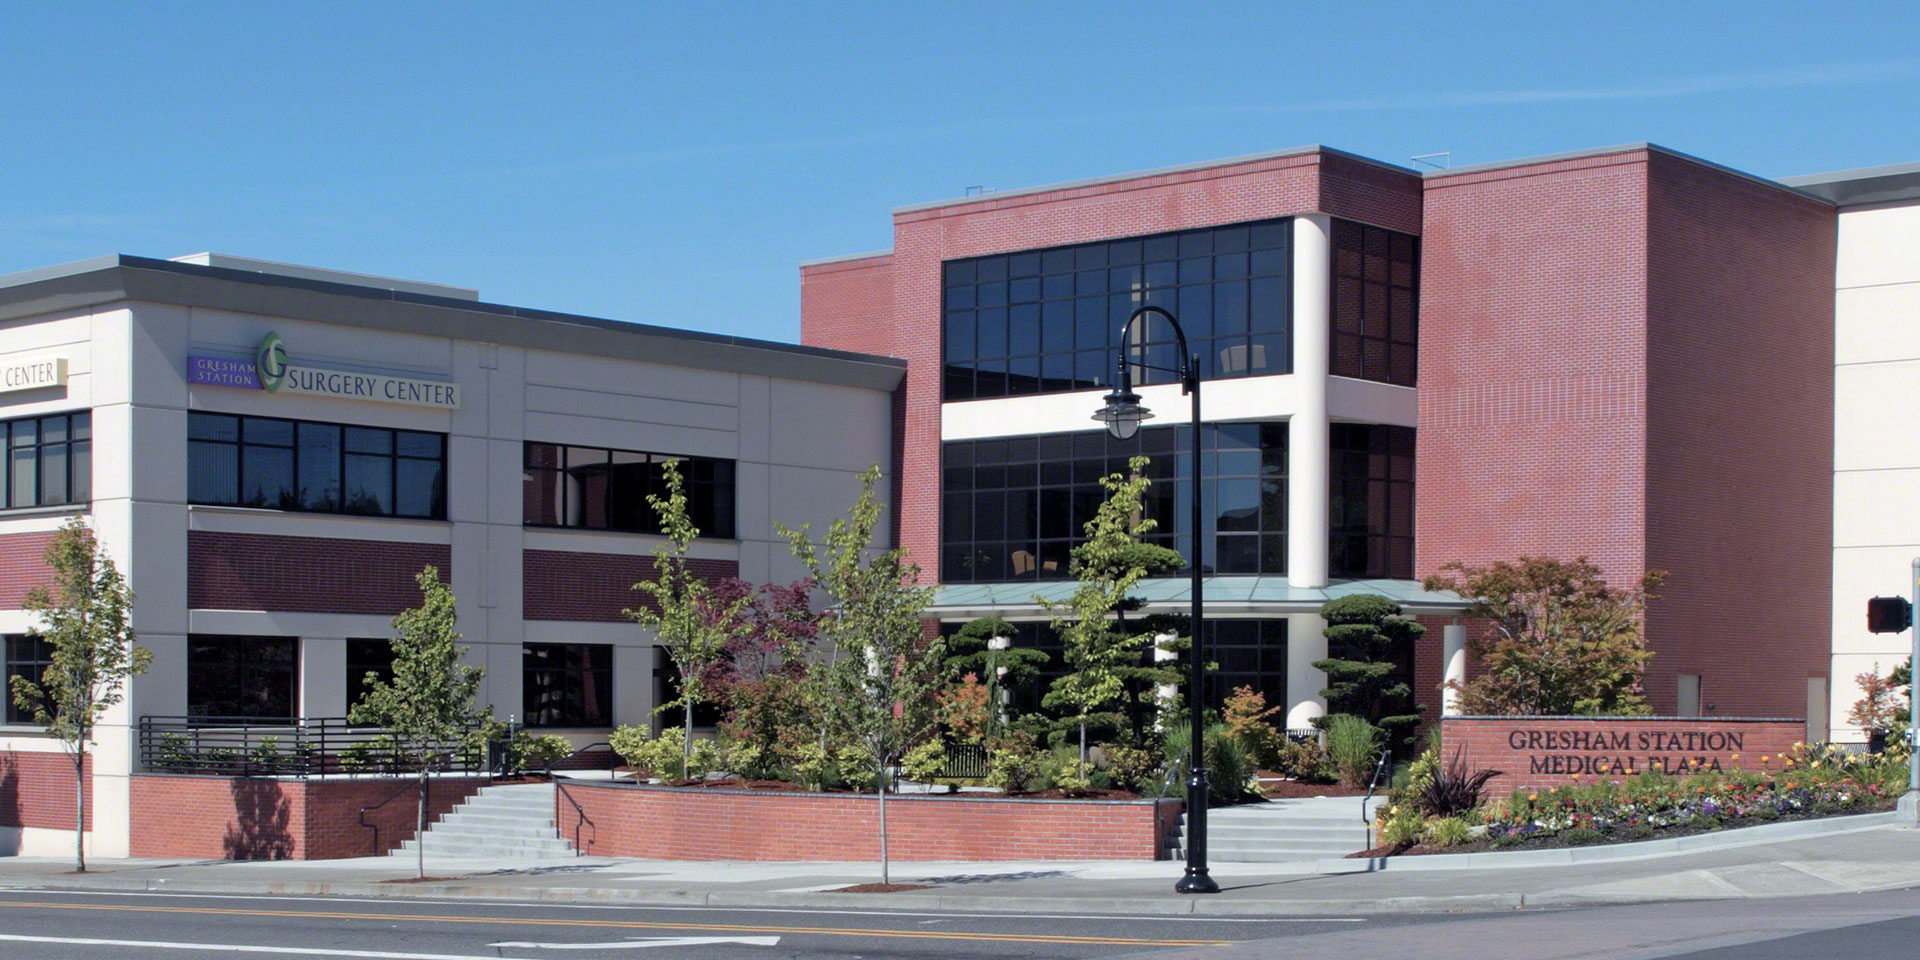 Gresham Station Medical Plaza | Solarbronze® Glass with Sungate® 400 Clear Glass